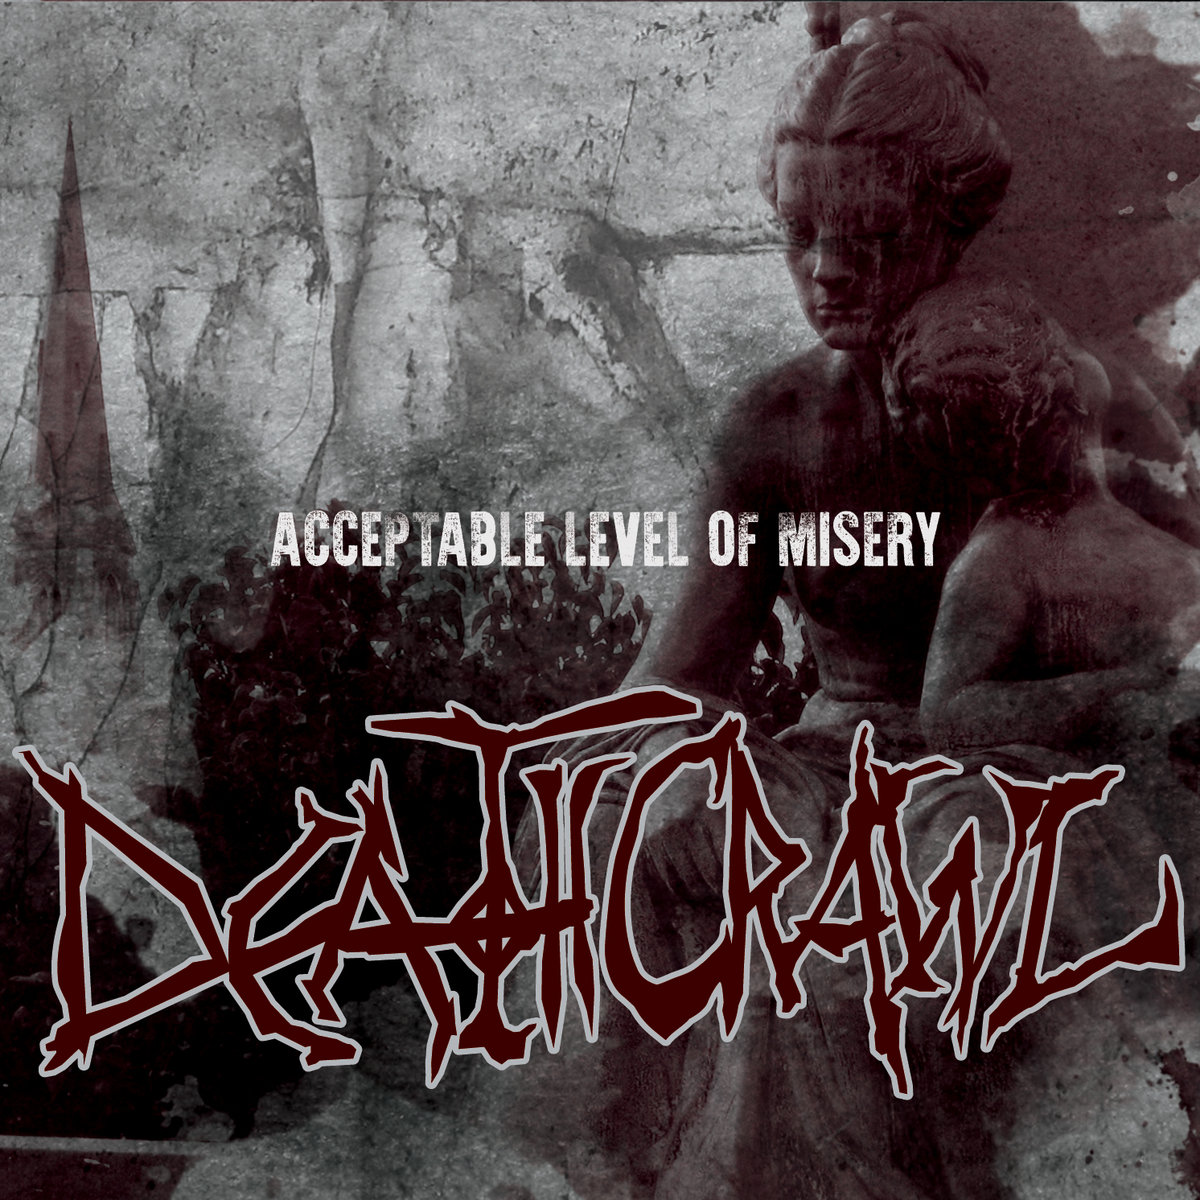 death crawl - acceptable level of misery